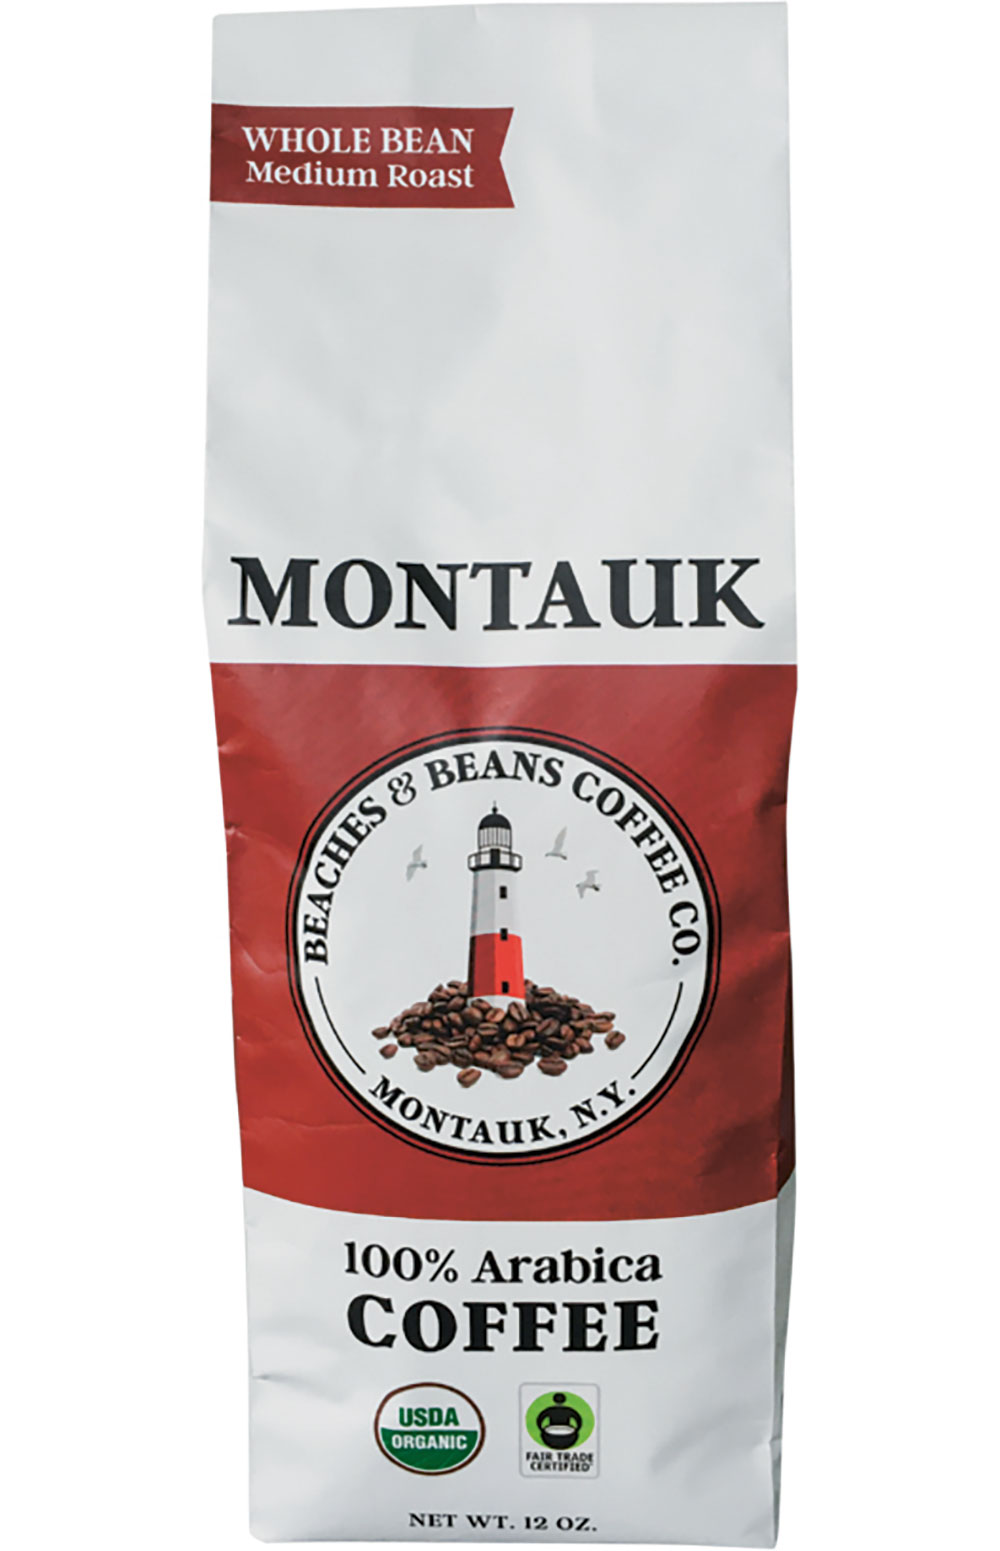 Beaches and Beans Montauk Coffee